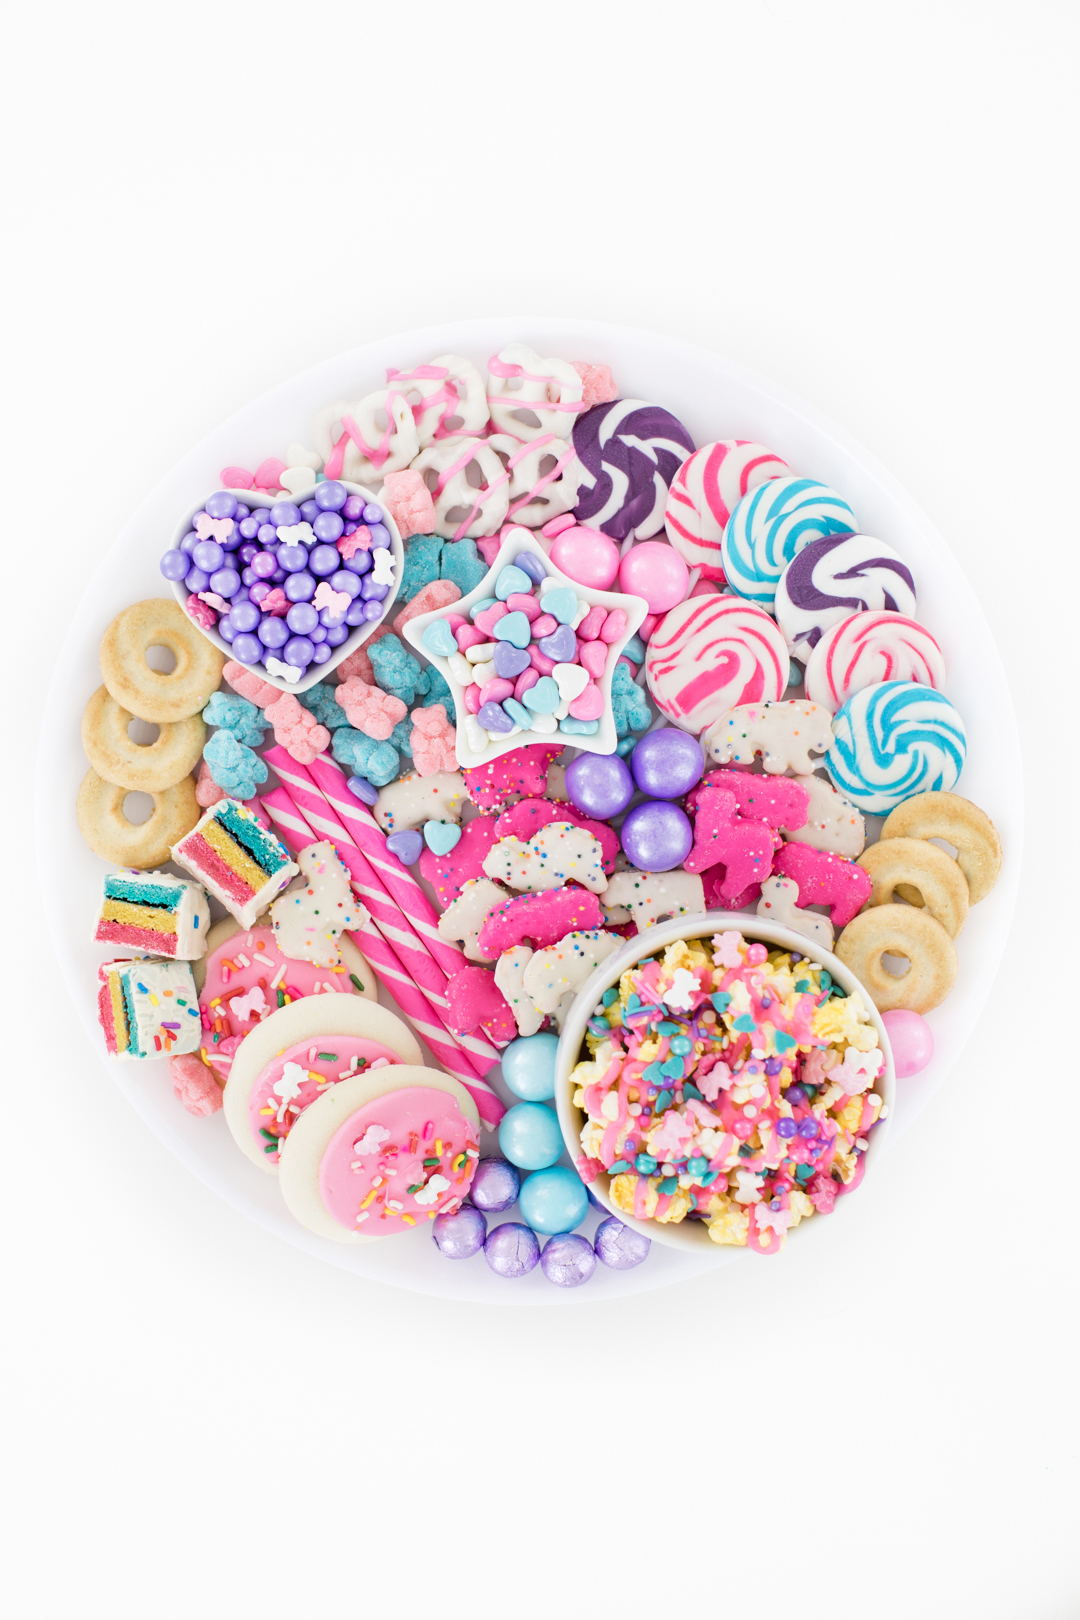 round dessert snack tray filled with pastel treats